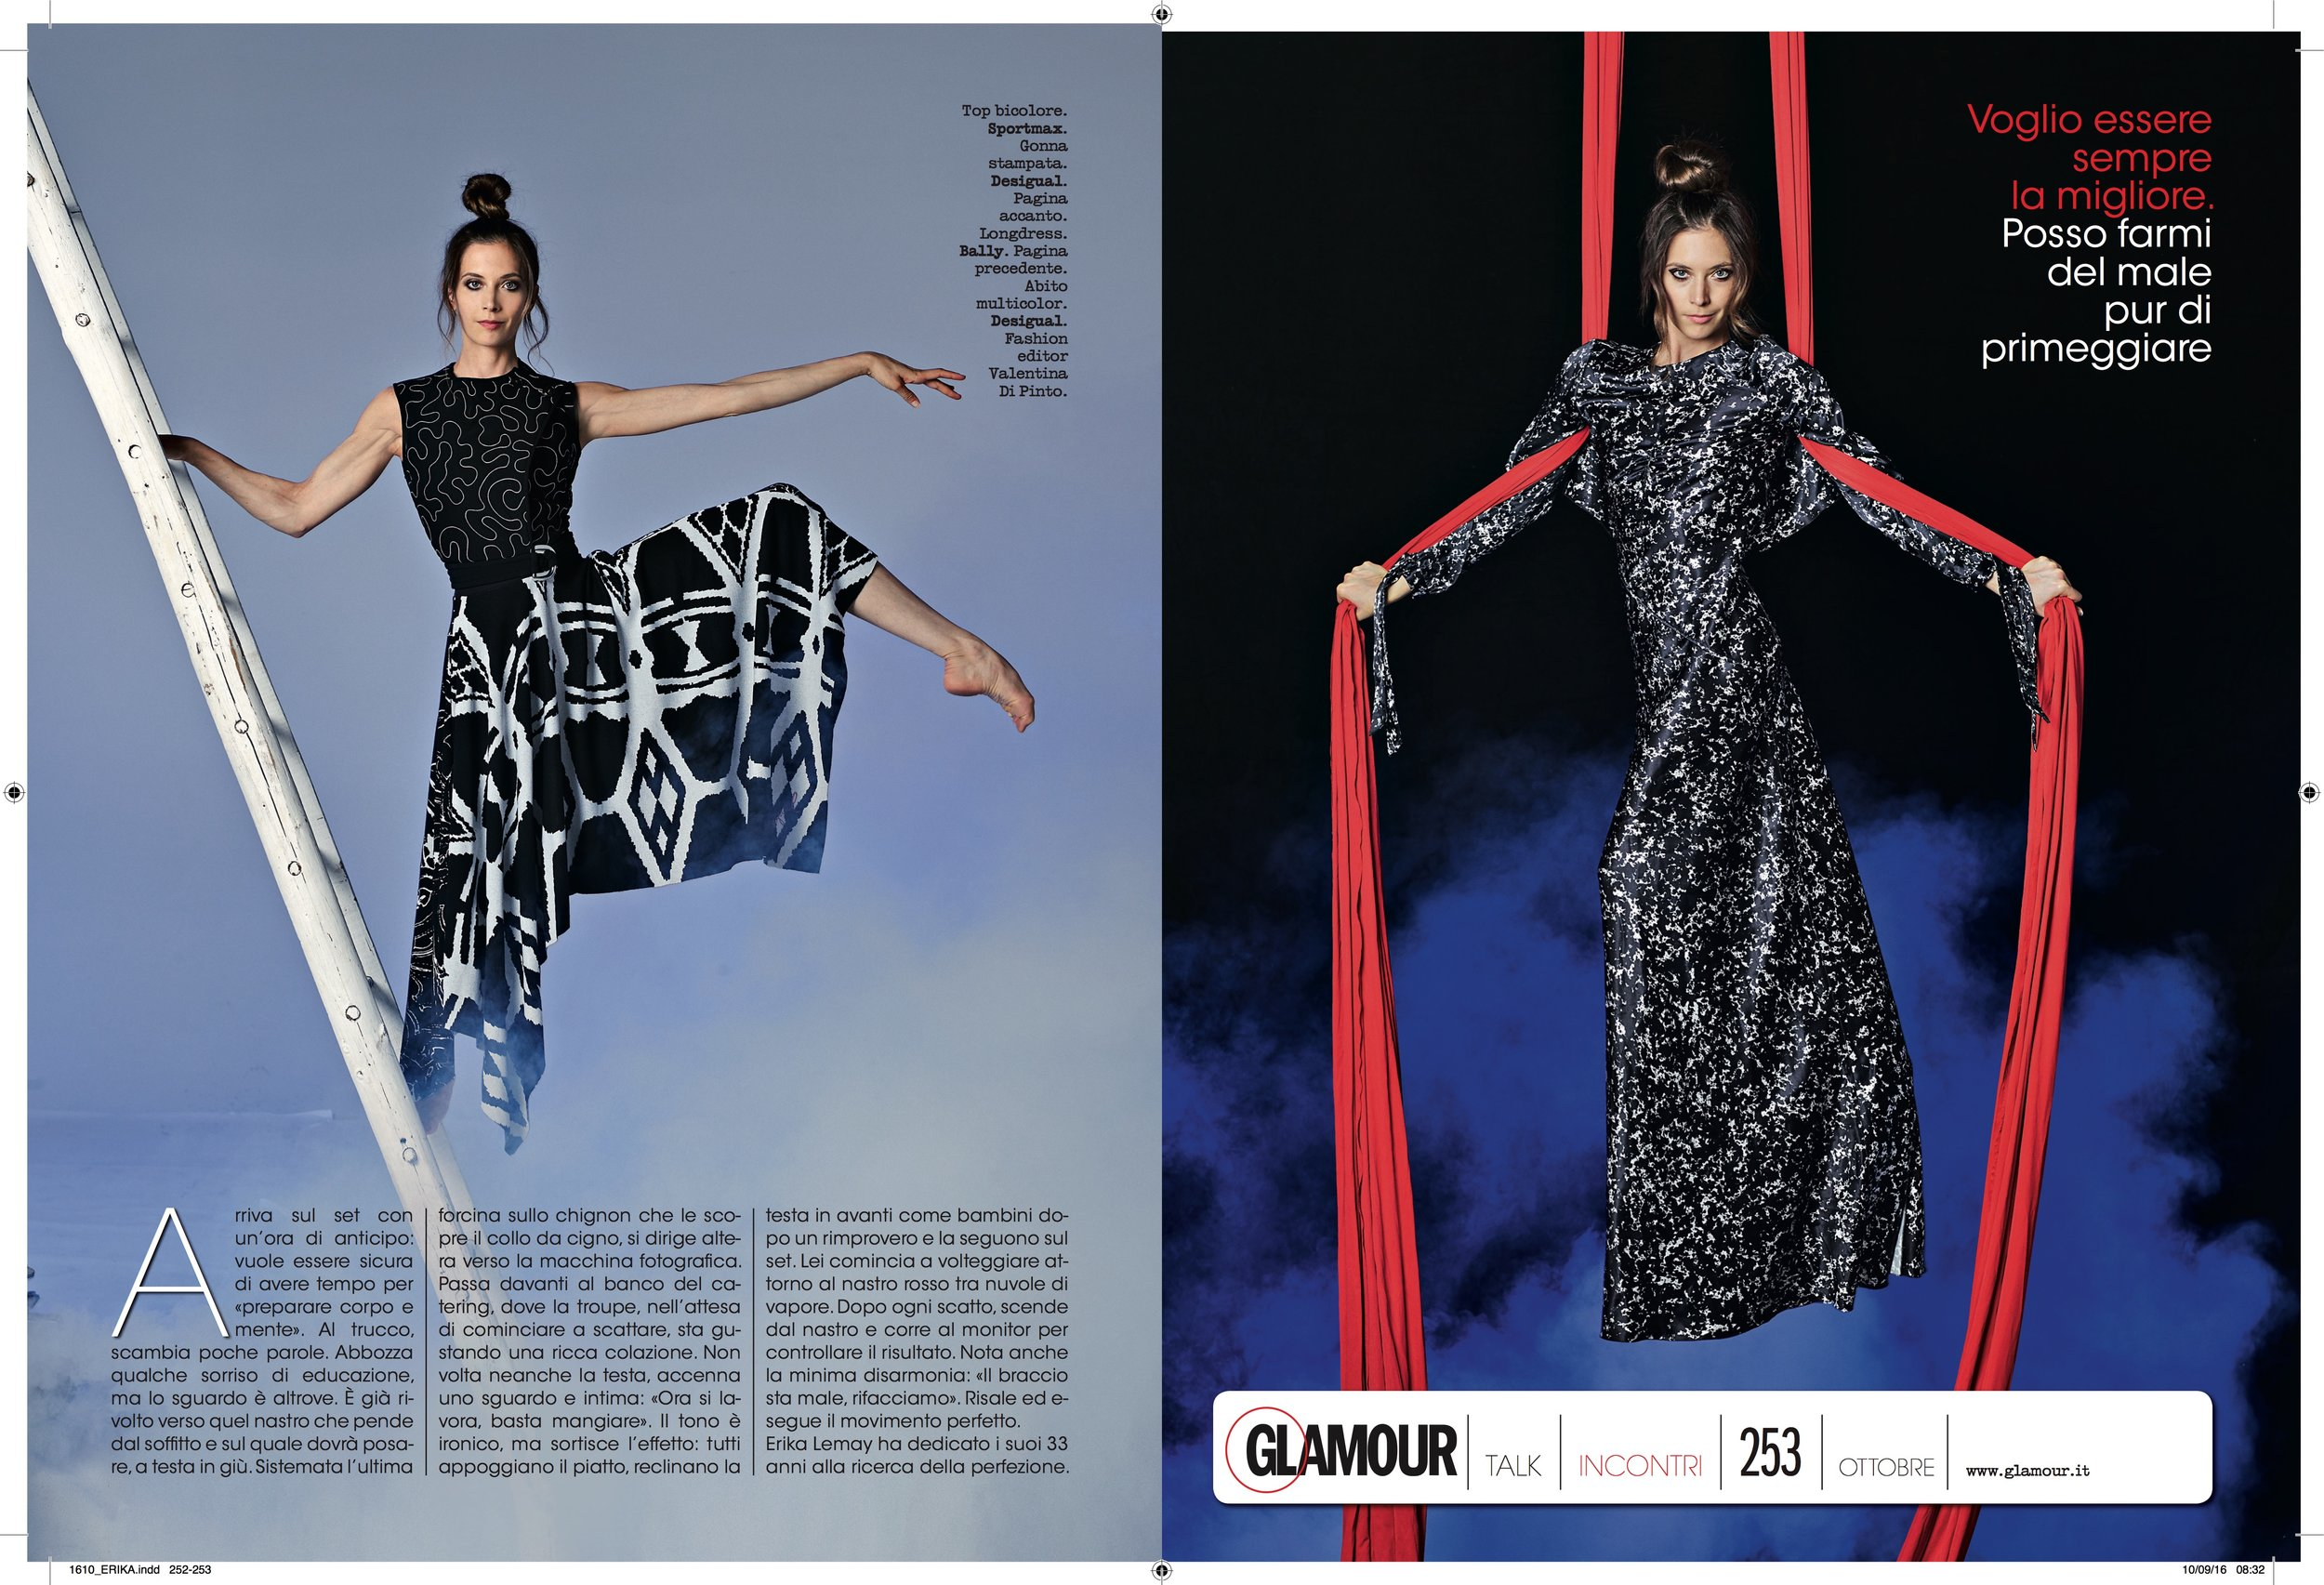 Glamour page 2-3.jpg